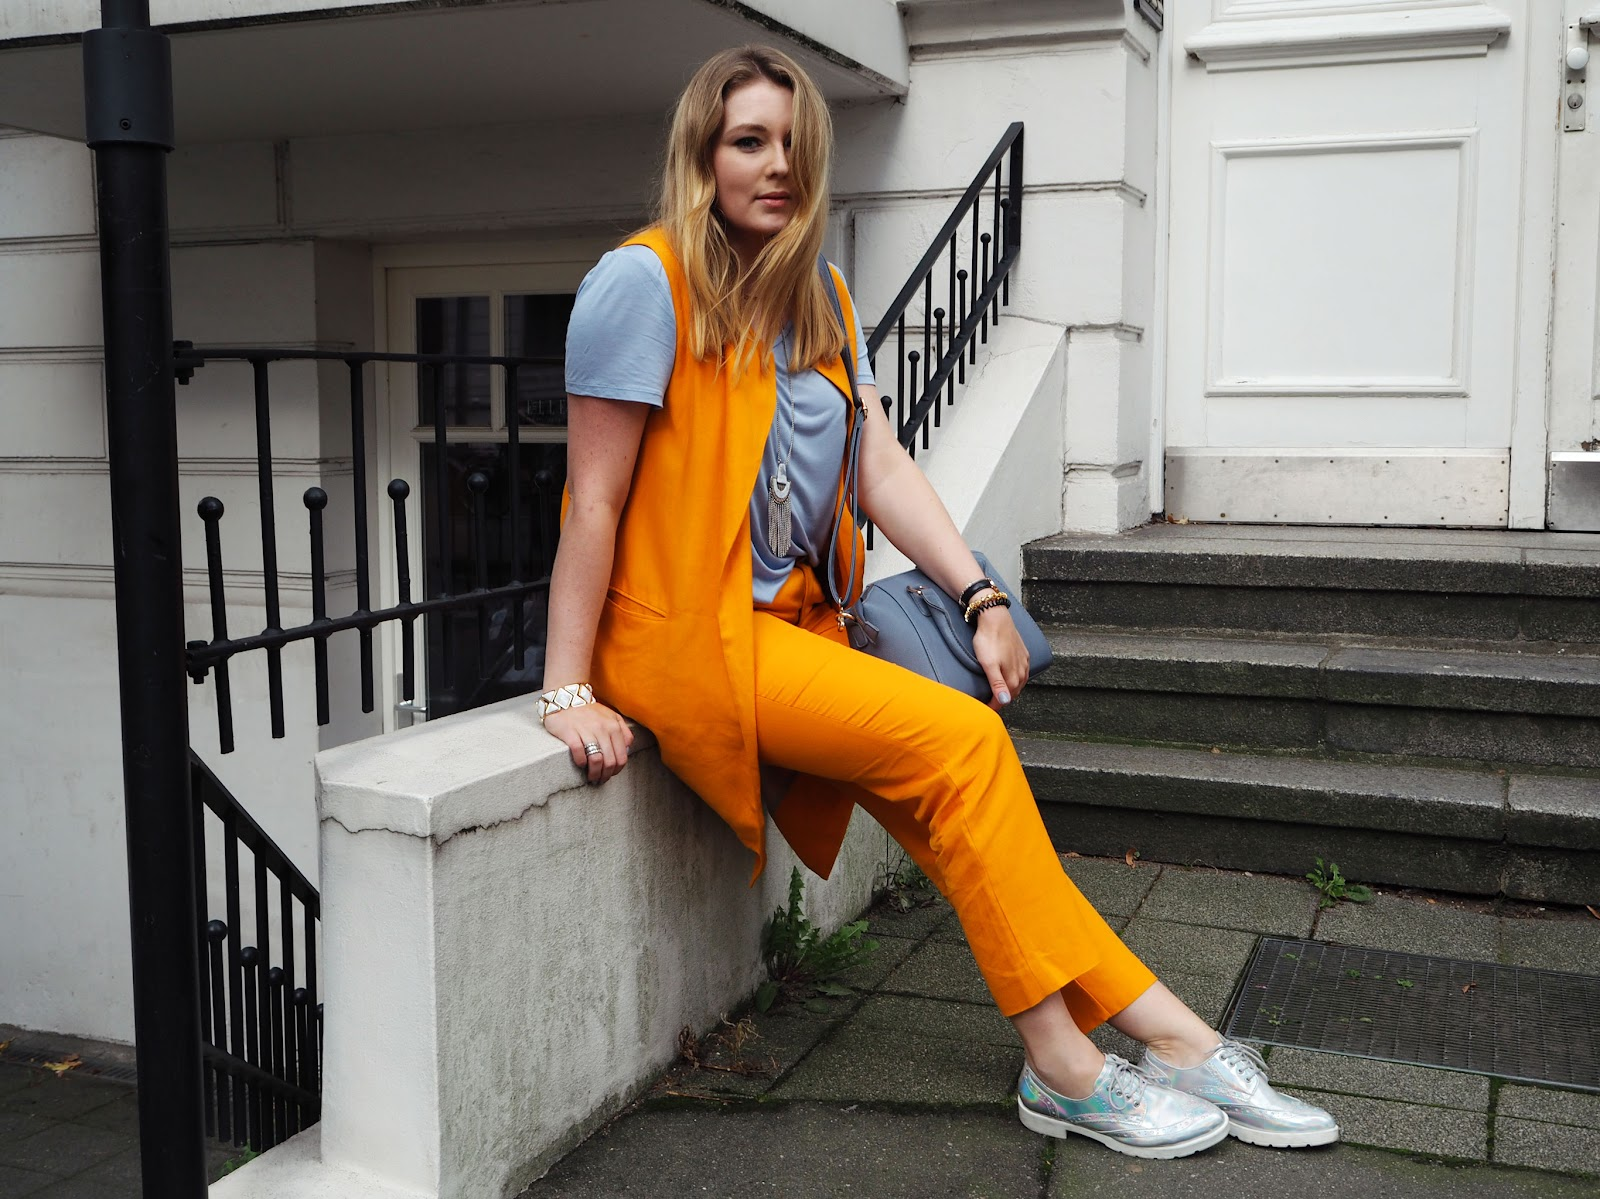 serenity, orange, farbtrend, modeblogger, hamburg, outfit, styling, tasche, blau, pantone, farbmix,